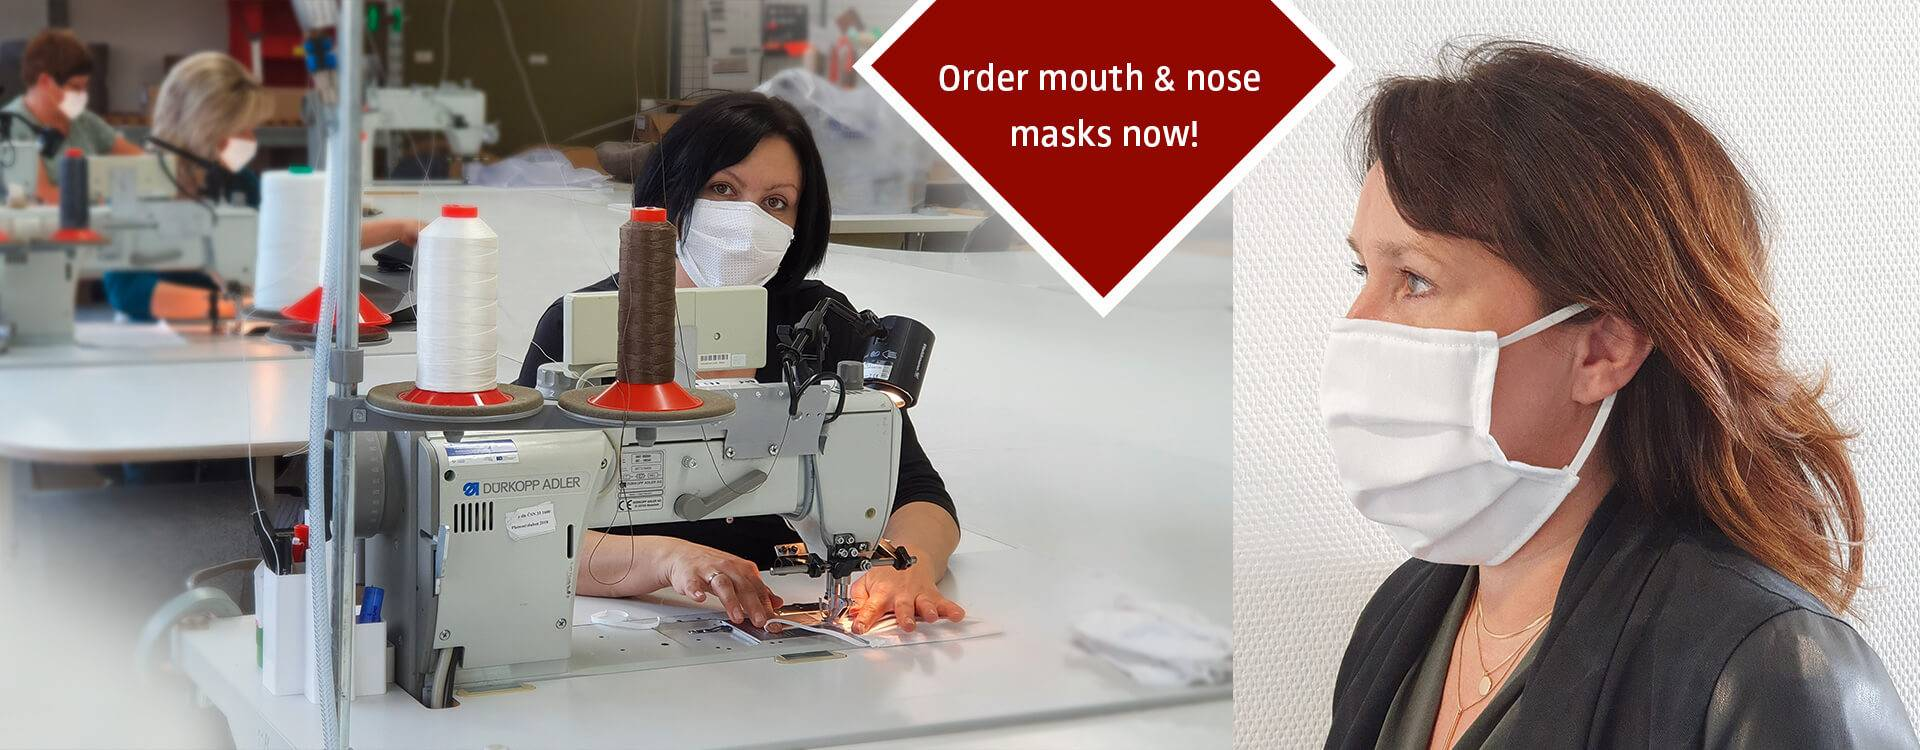 Order mouth & nose masks now!